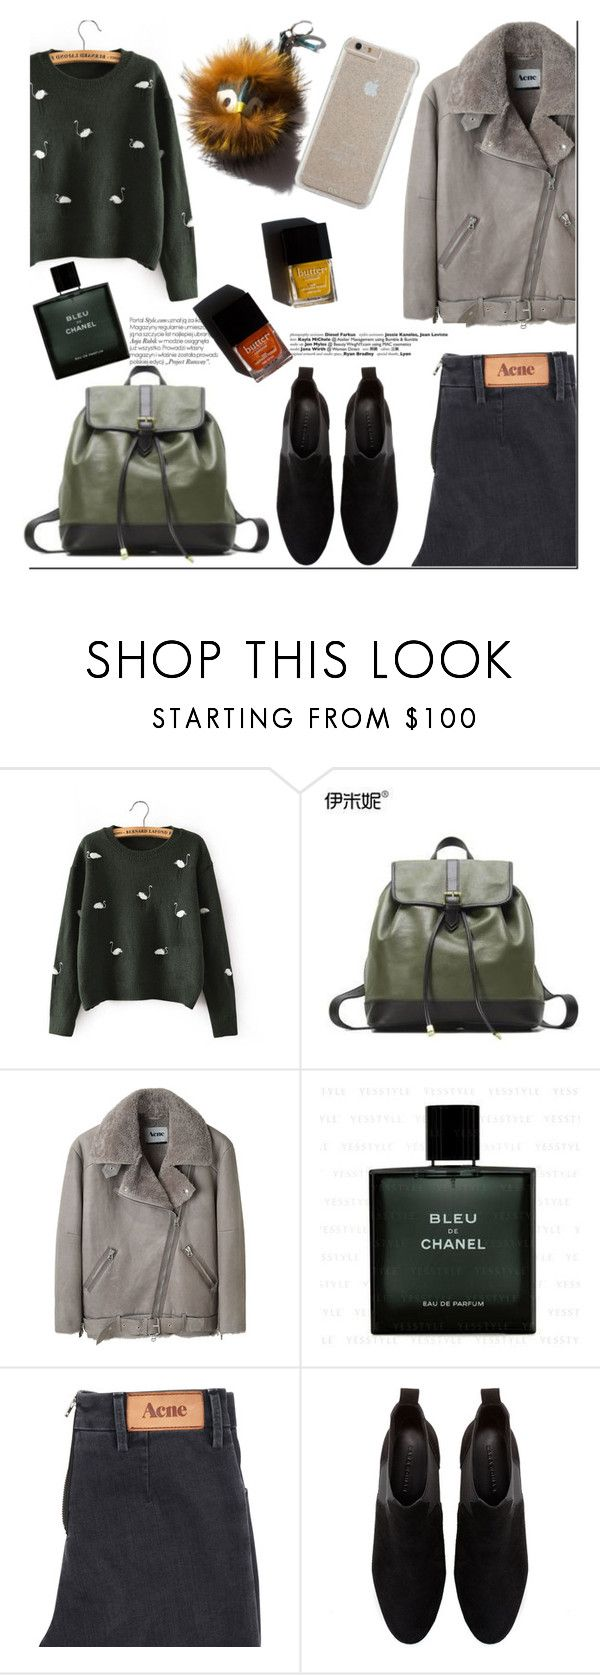 """Cyber Monday - YesStyle"" by nastya-d ❤ liked on Polyvore featuring Singkbee, Emini House, Anja, Acne Studios, Chanel, Zara, Garance Doré, Case-Mate, winterfashion and yesstyle"